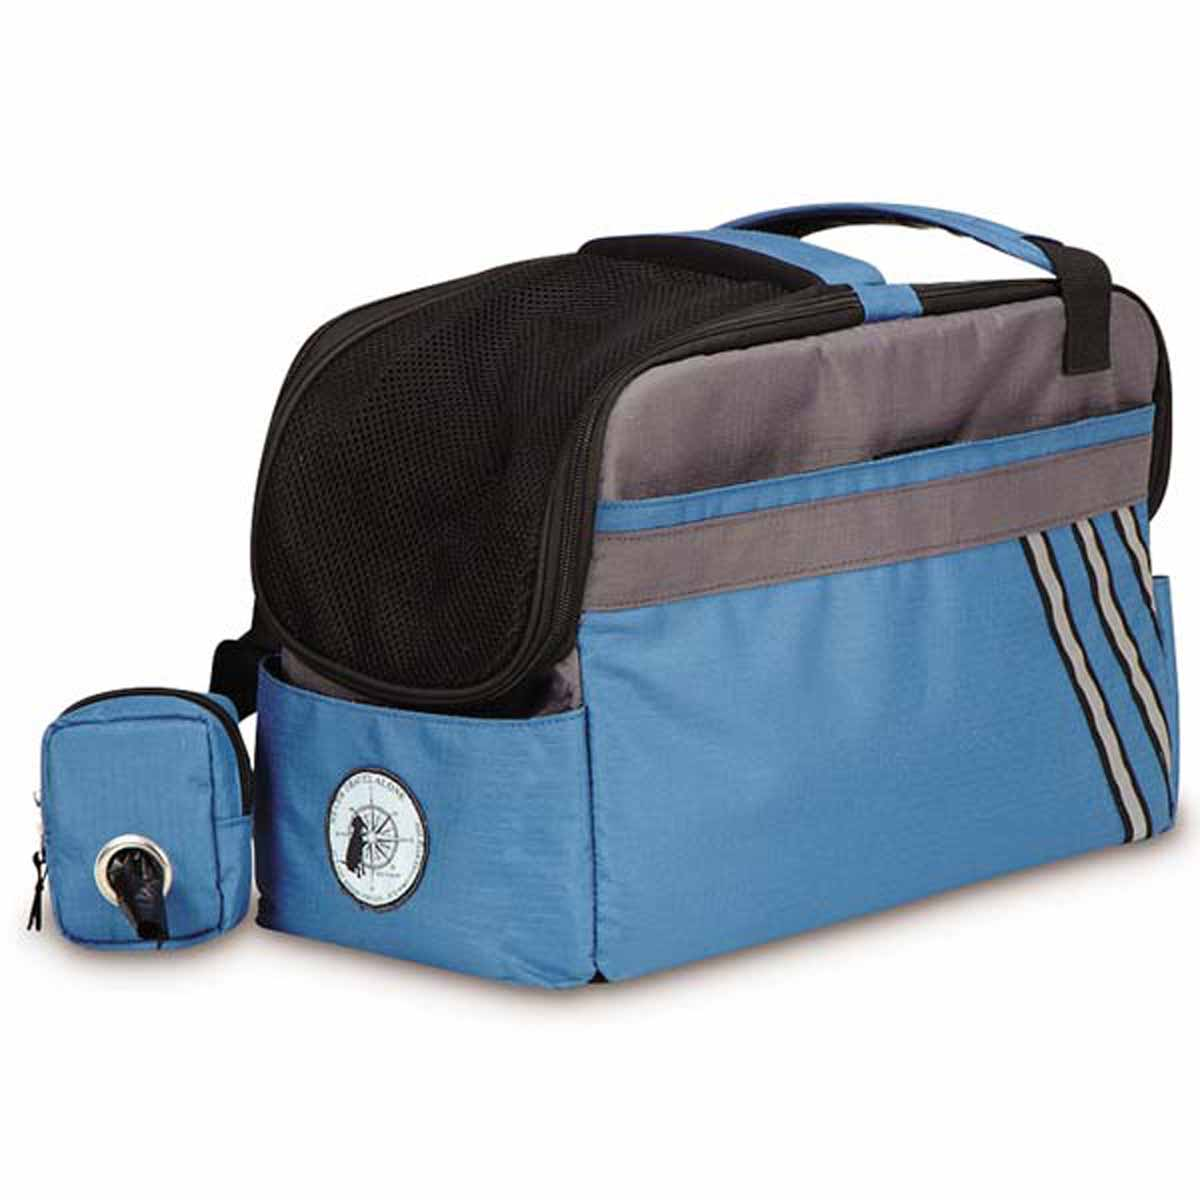 Dog Is Good Never Travel Alone 2 In 1 Dog Carrier Blue